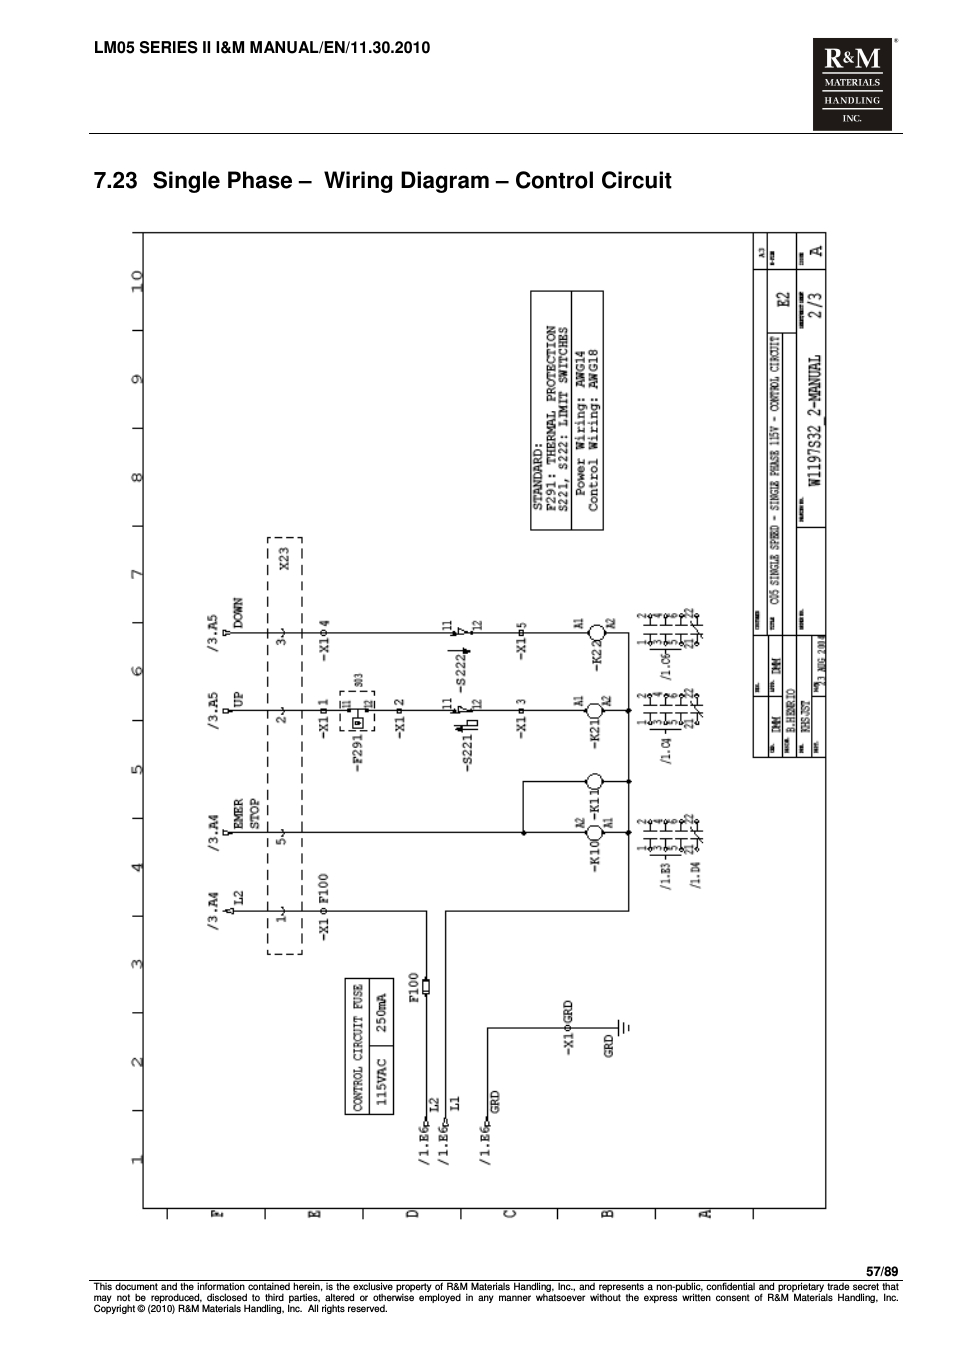 hight resolution of cm hoist wiring diagram gallery wiring diagram sample 2005 rx 8 plug diagram cm hoist